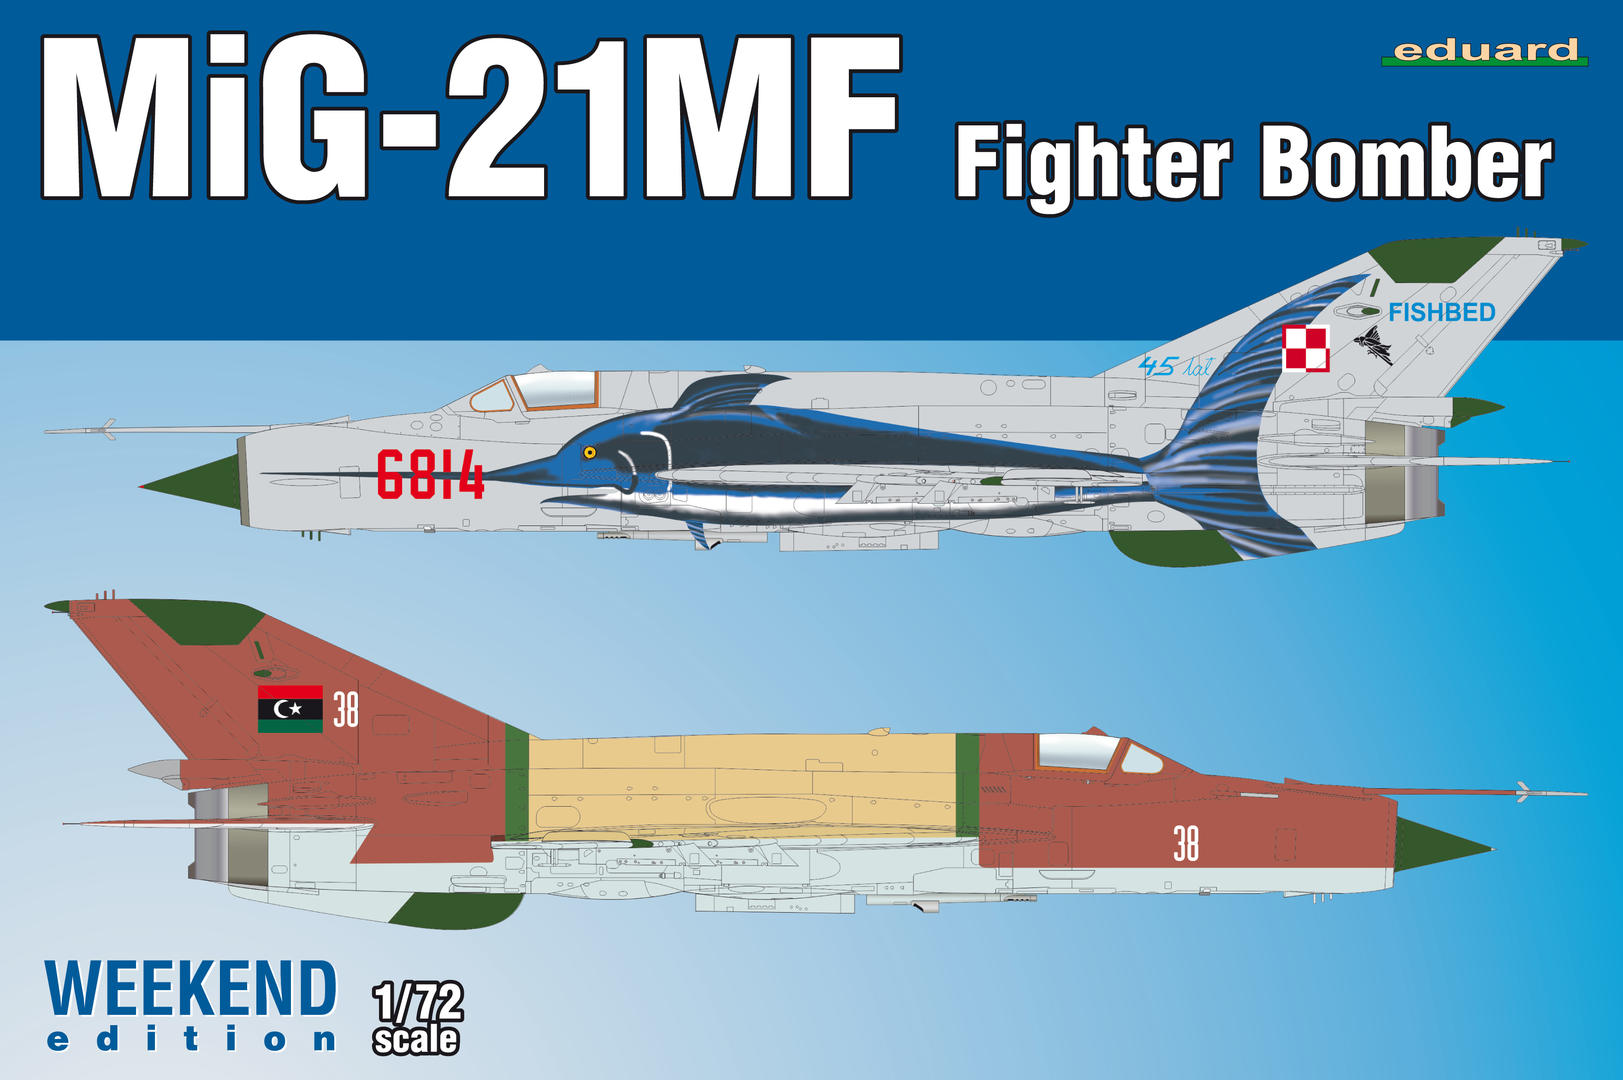 Eduard Accessories 672193 MiG-21MF airbrakes for Eduard in 1:72